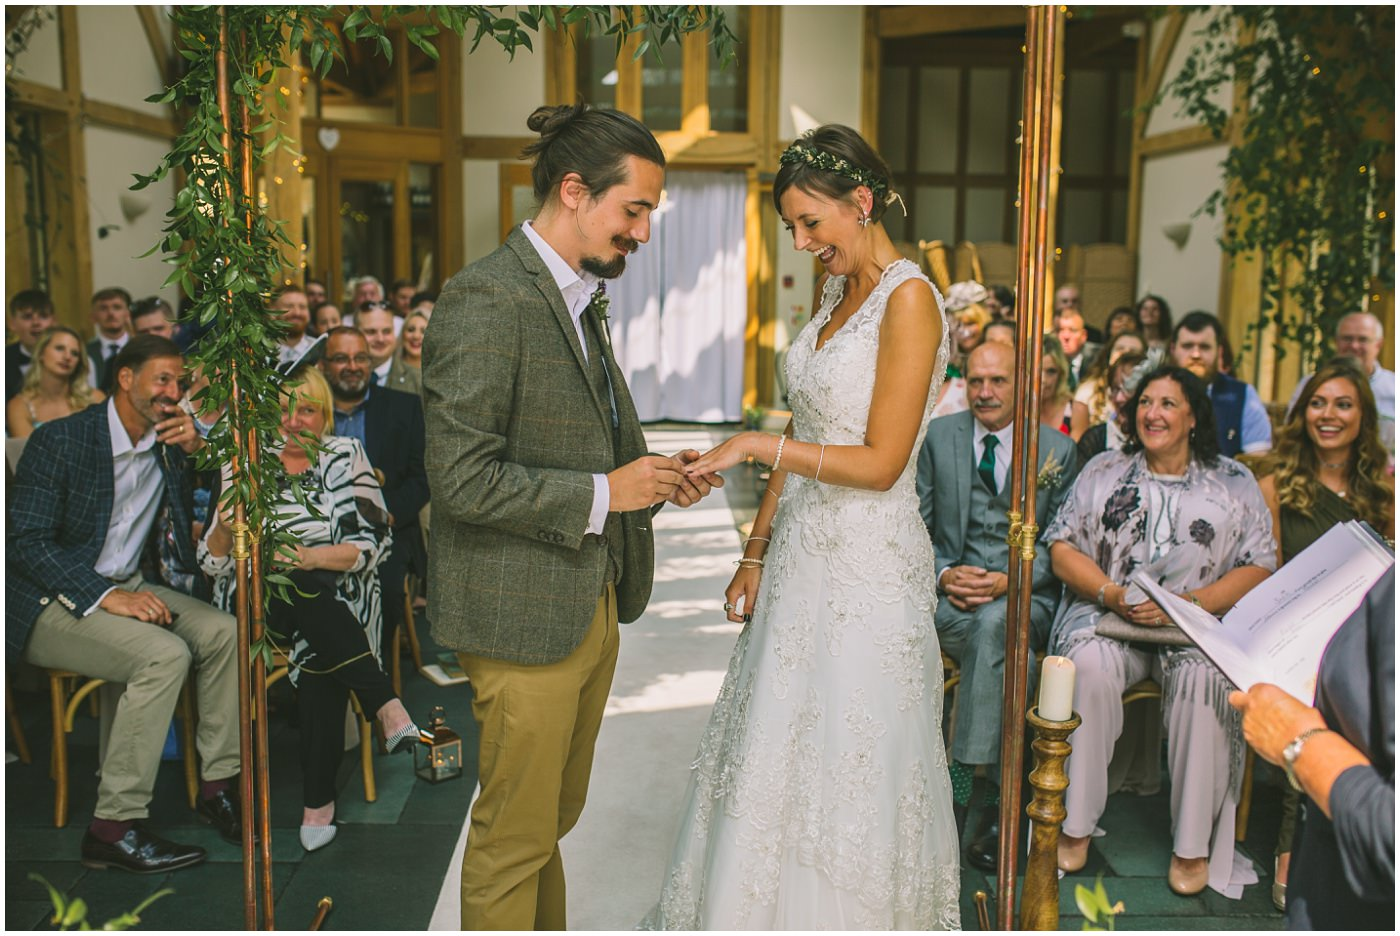 Groom exchanges rings with his bride during knutsford wedding